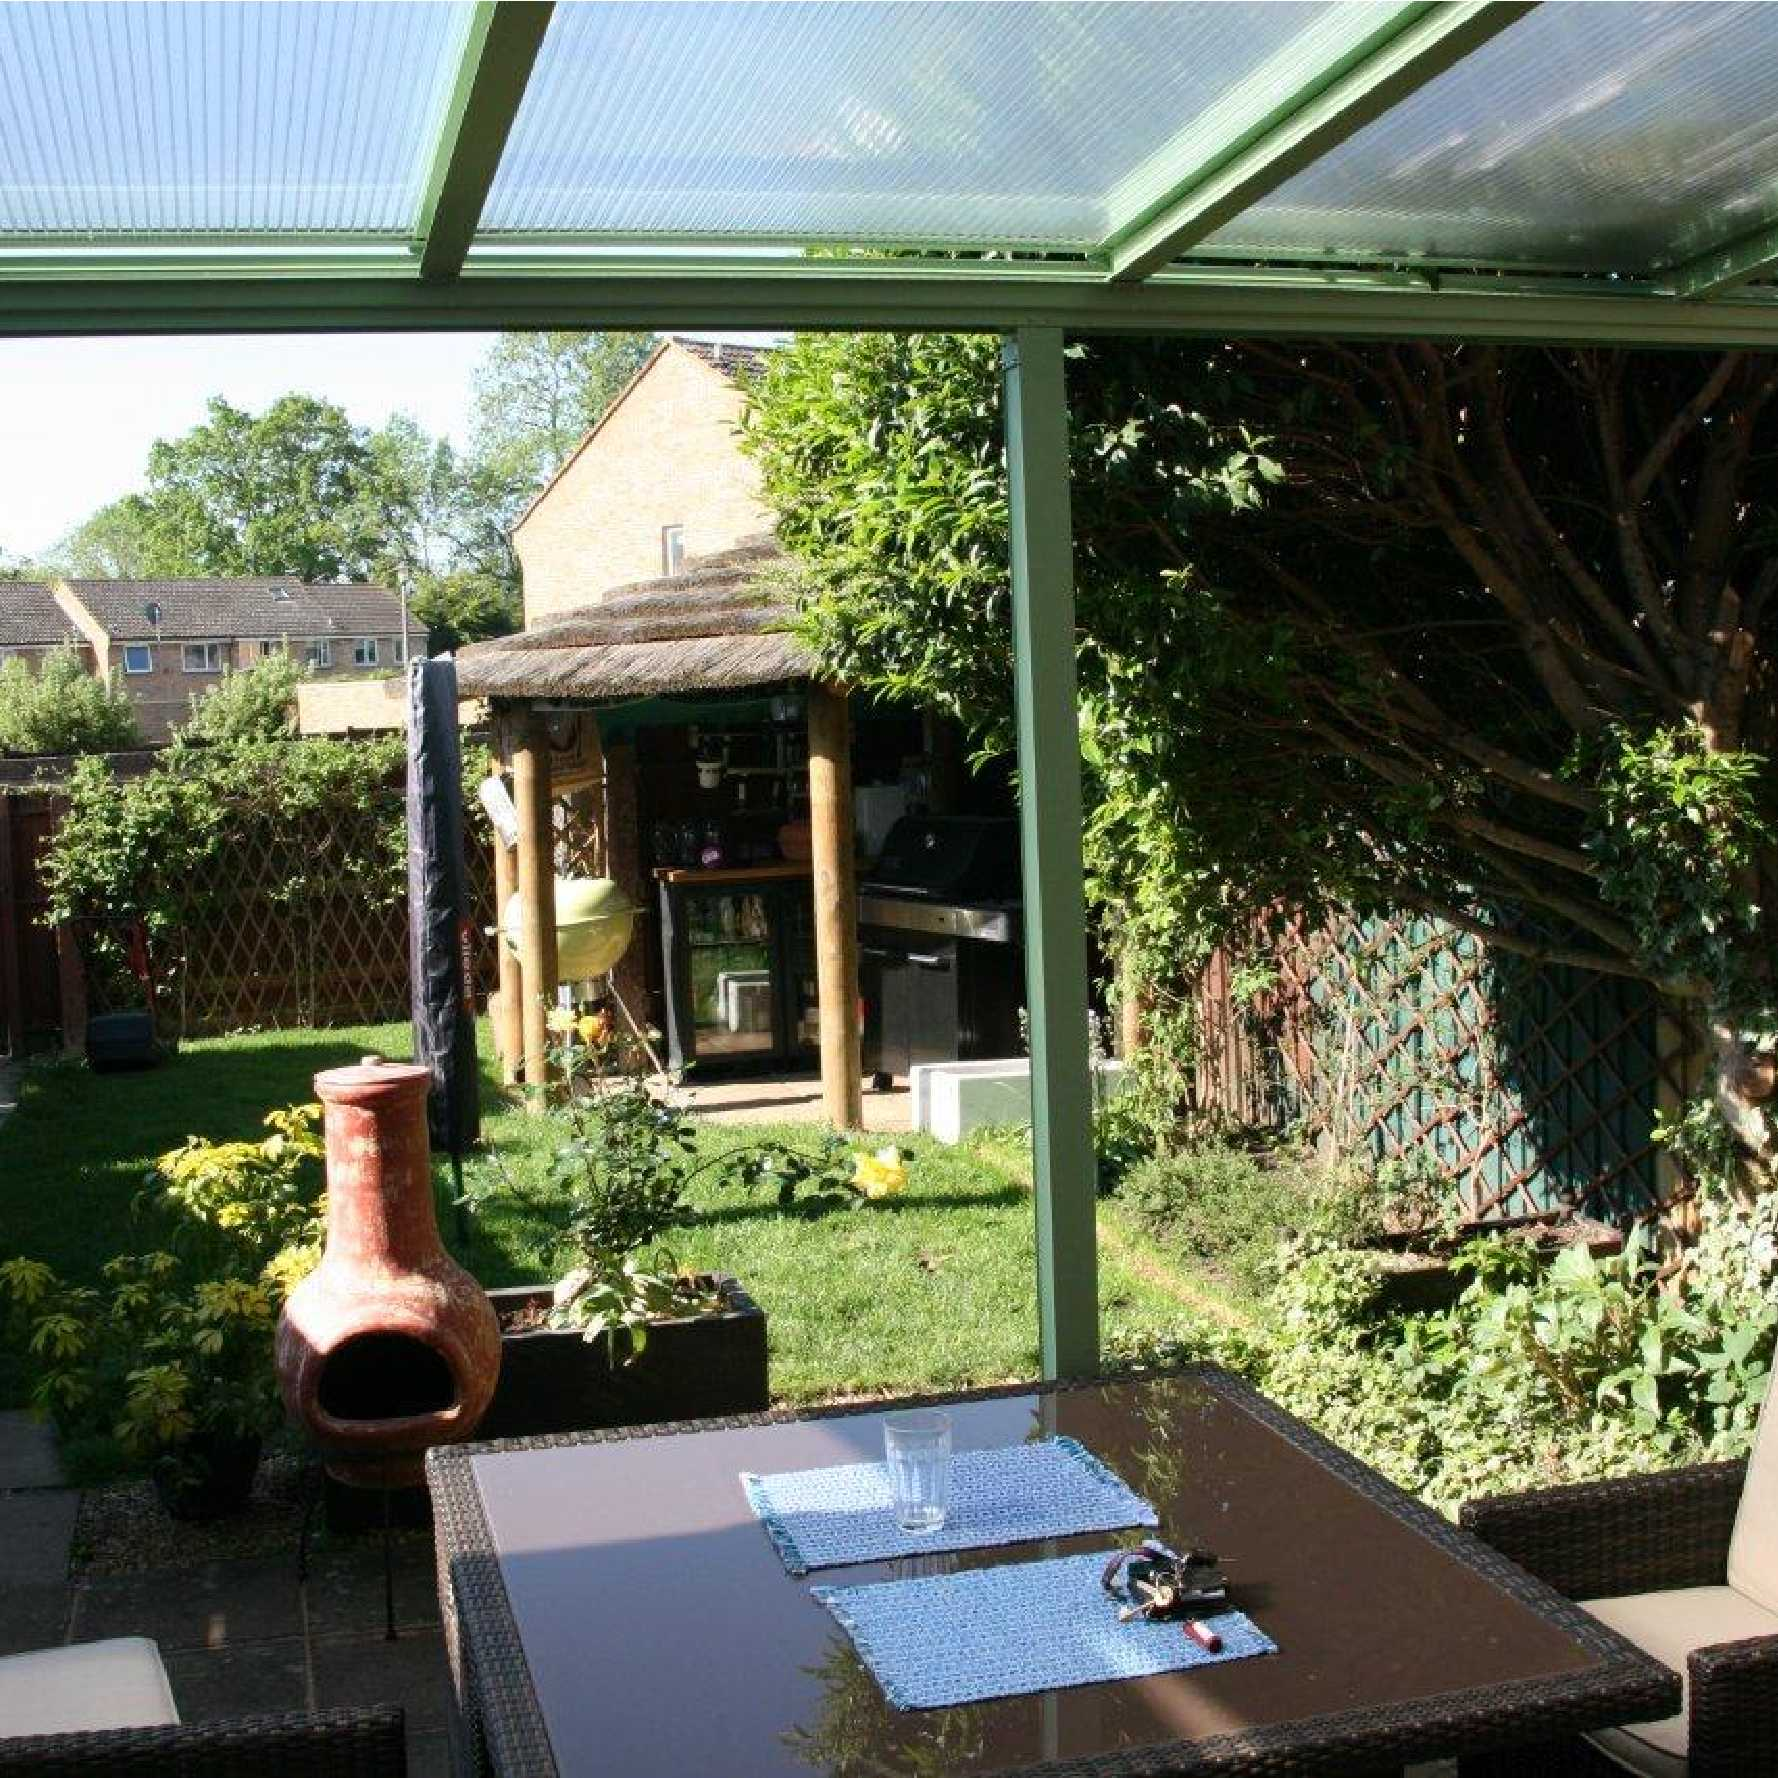 Affordable Omega Smart White Lean-To Canopy with 16mm Polycarbonate Glazing - 3.1m (W) x 3.0m (P), (2) Supporting Posts